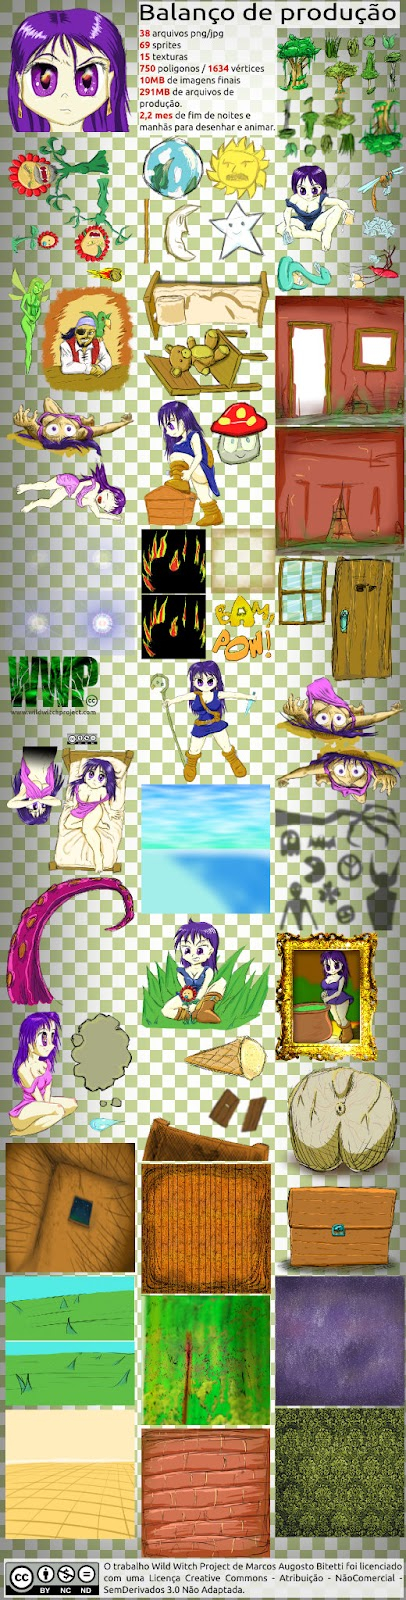 Estatísticas do video: 69 sprites, 15 texturas, 10MB...